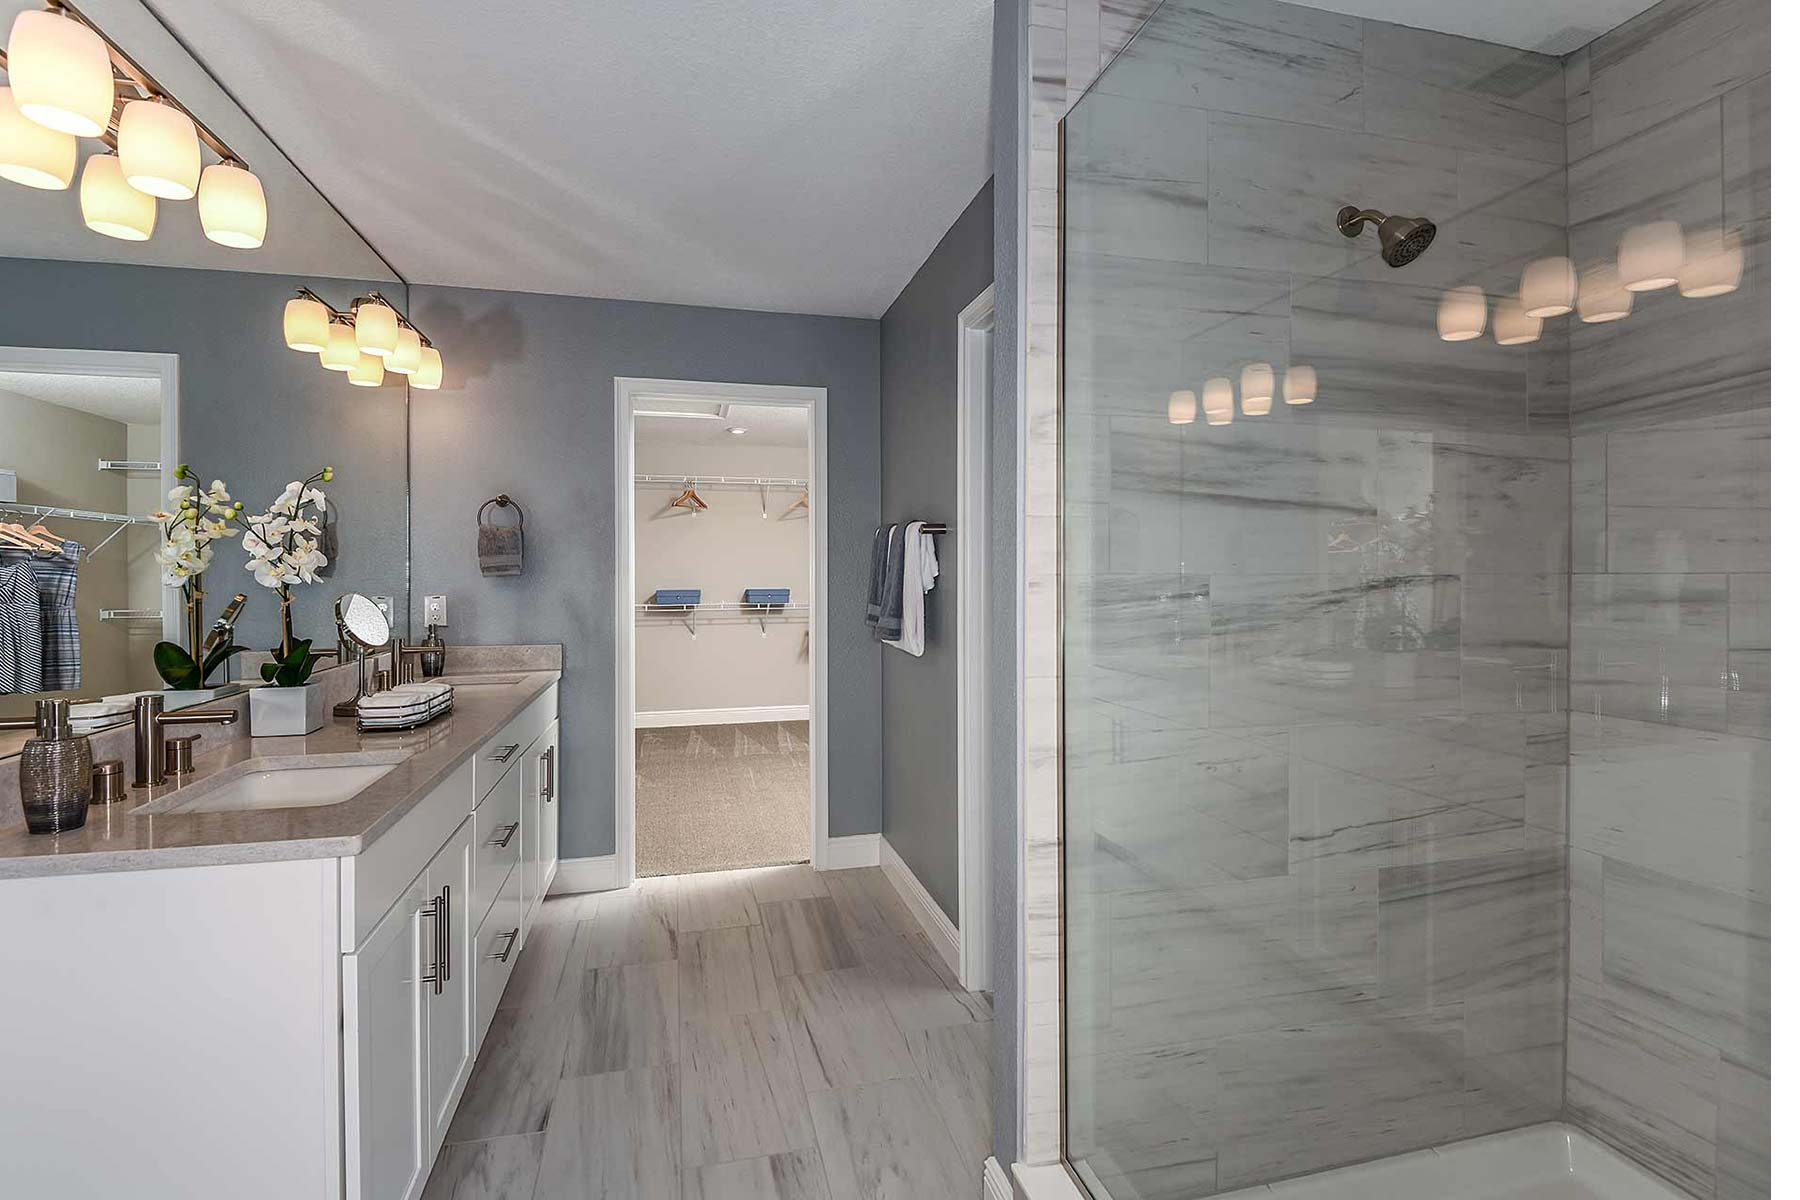 Venice Plan Bathroom_Master Bath at Avea Pointe in Lutz Florida by Mattamy Homes